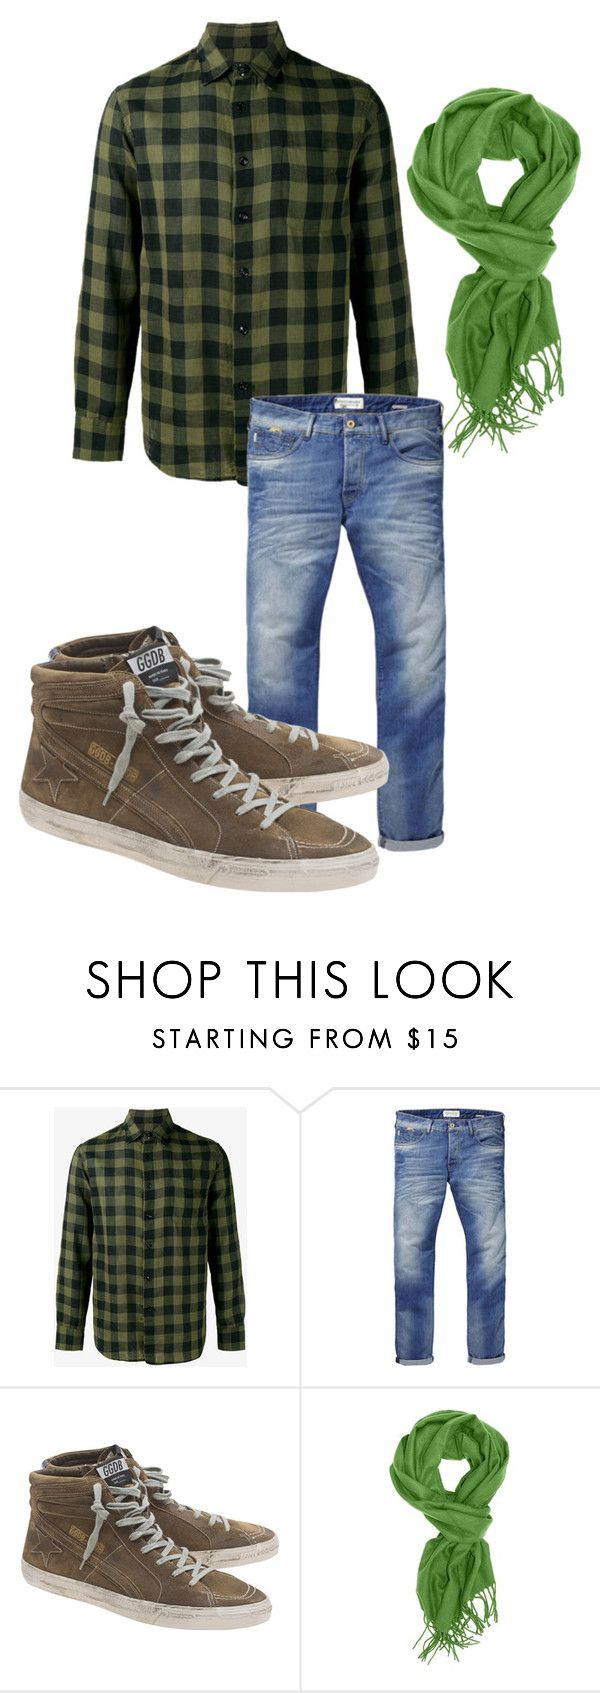 """Green - Male"" by cookiecookiton on Polyvore featuring rag & bone, Scotch & Soda, Golden Goose, men's fashion and menswear"